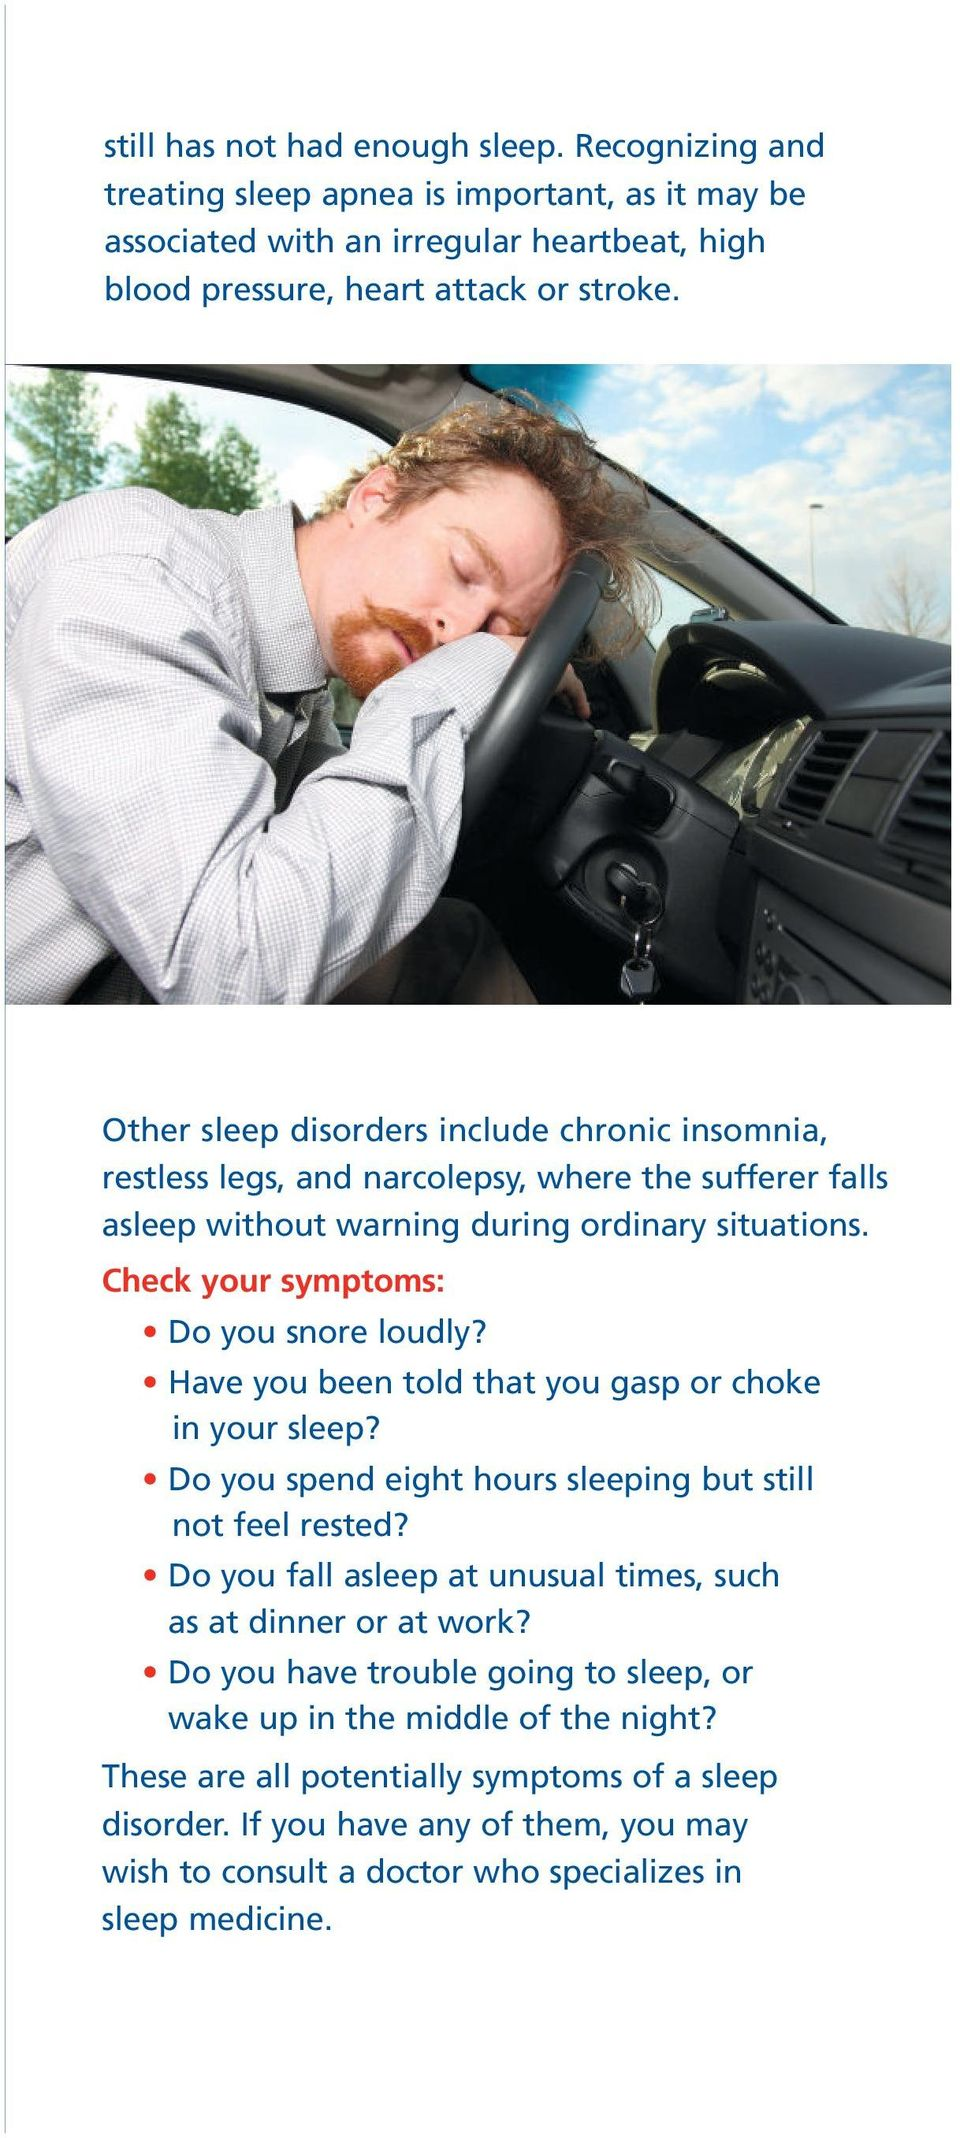 Have you been told that you gasp or choke in your sleep? Do you spend eight hours sleeping but still not feel rested? Do you fall asleep at unusual times, such as at dinner or at work?